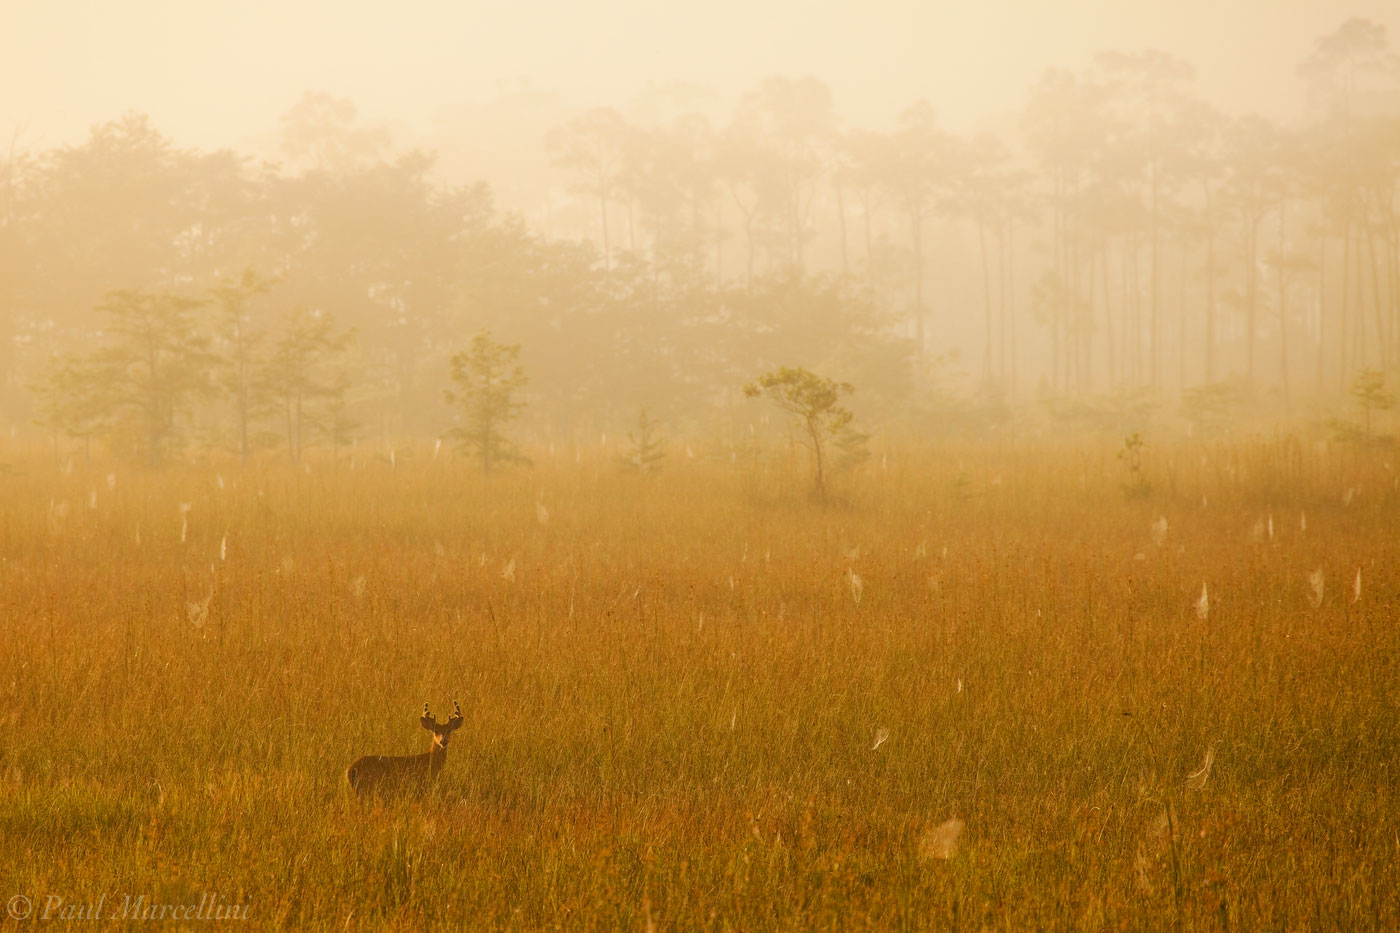 Odocoileus virginianus, white-tailed deer, everglades, spiderwebs, dew, fog, morning, deer, photo